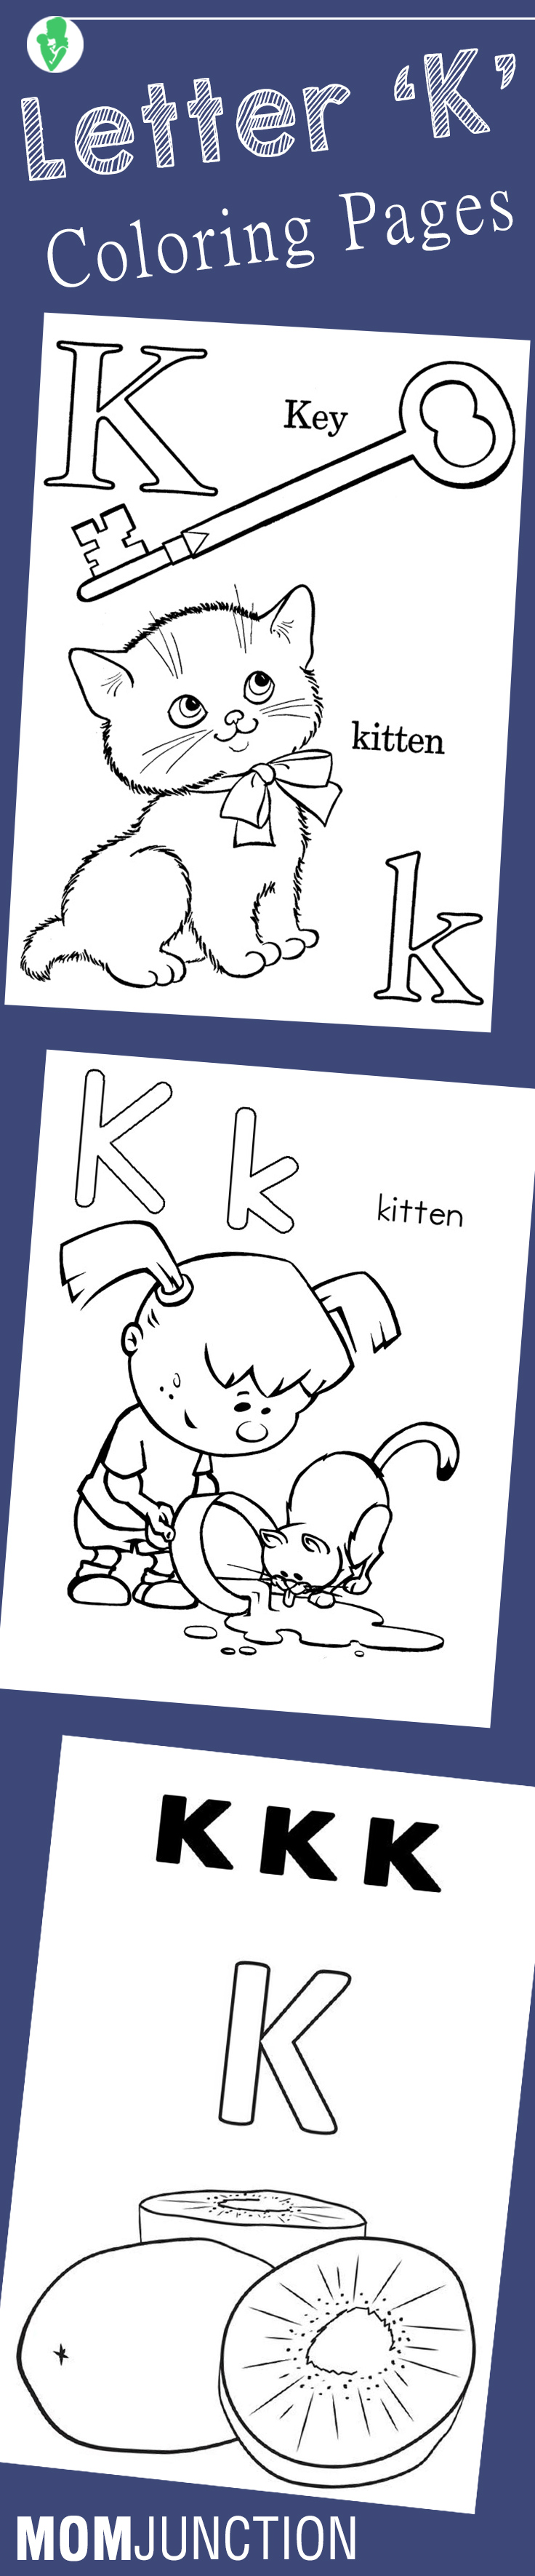 Top 10 letter k coloring pages your toddler will love to learn top 10 letter k coloring pages your toddler will love to learn color spiritdancerdesigns